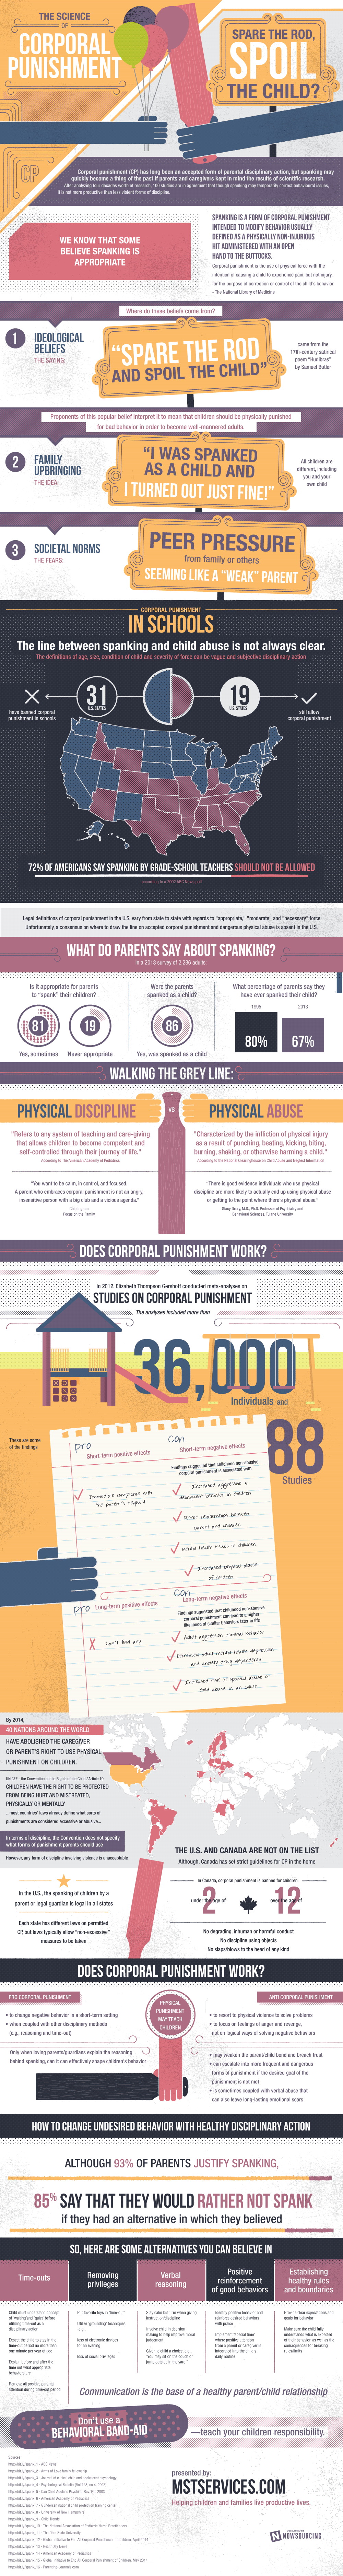 The Science Of Corporal Punishment